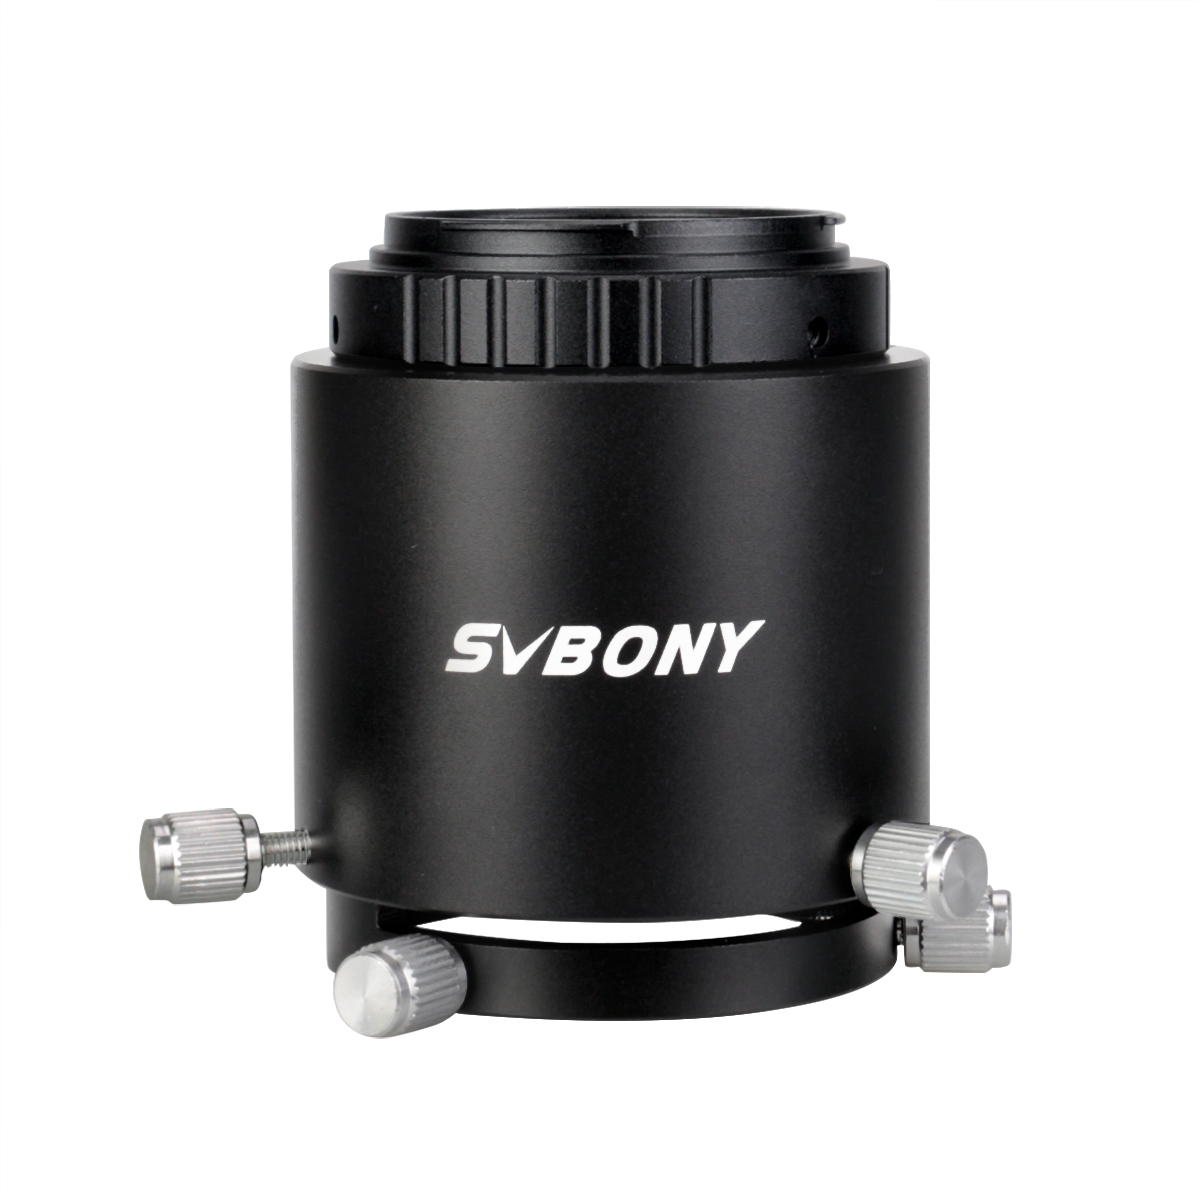 SVBONY Spotting Scope Camera Adapter Extensionable Two Tube Construction Fits Spotting Scope Eyepiece Outer Diameter 49Mm to 58Mm Black Metal for Canon SLR Cameras